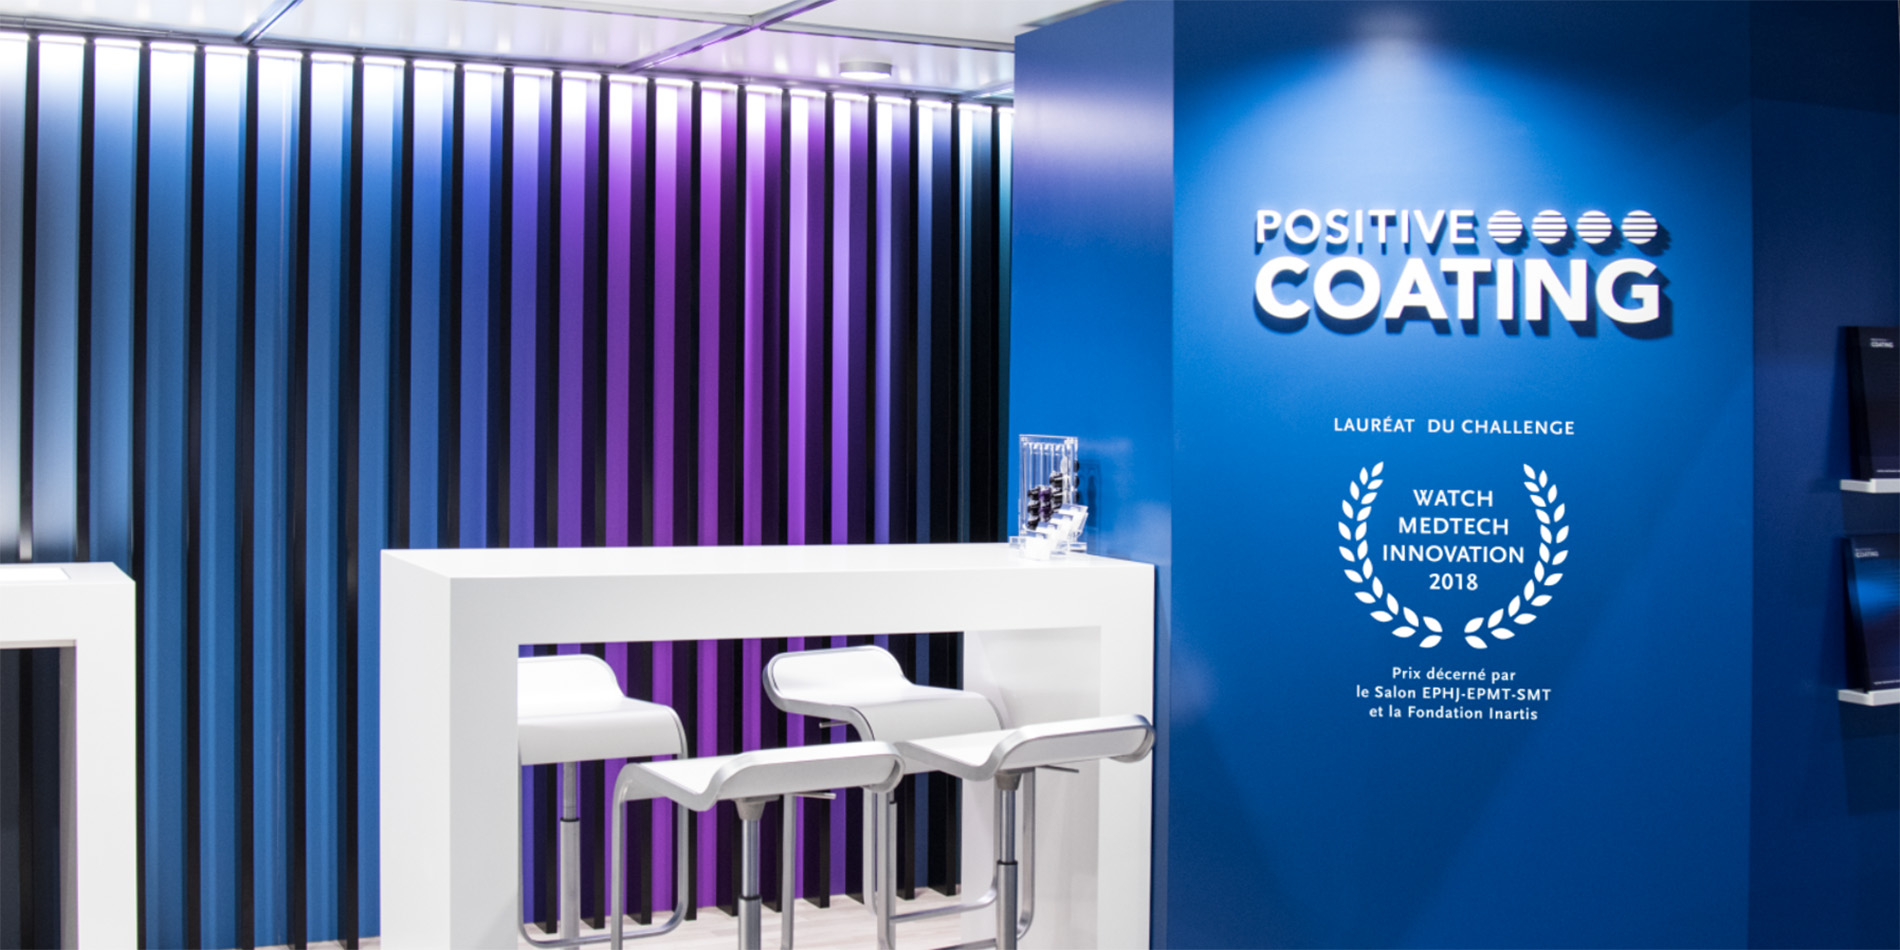 Positive Coating - Vitrine EPHJ 2018 - B12communication, communication et graphisme